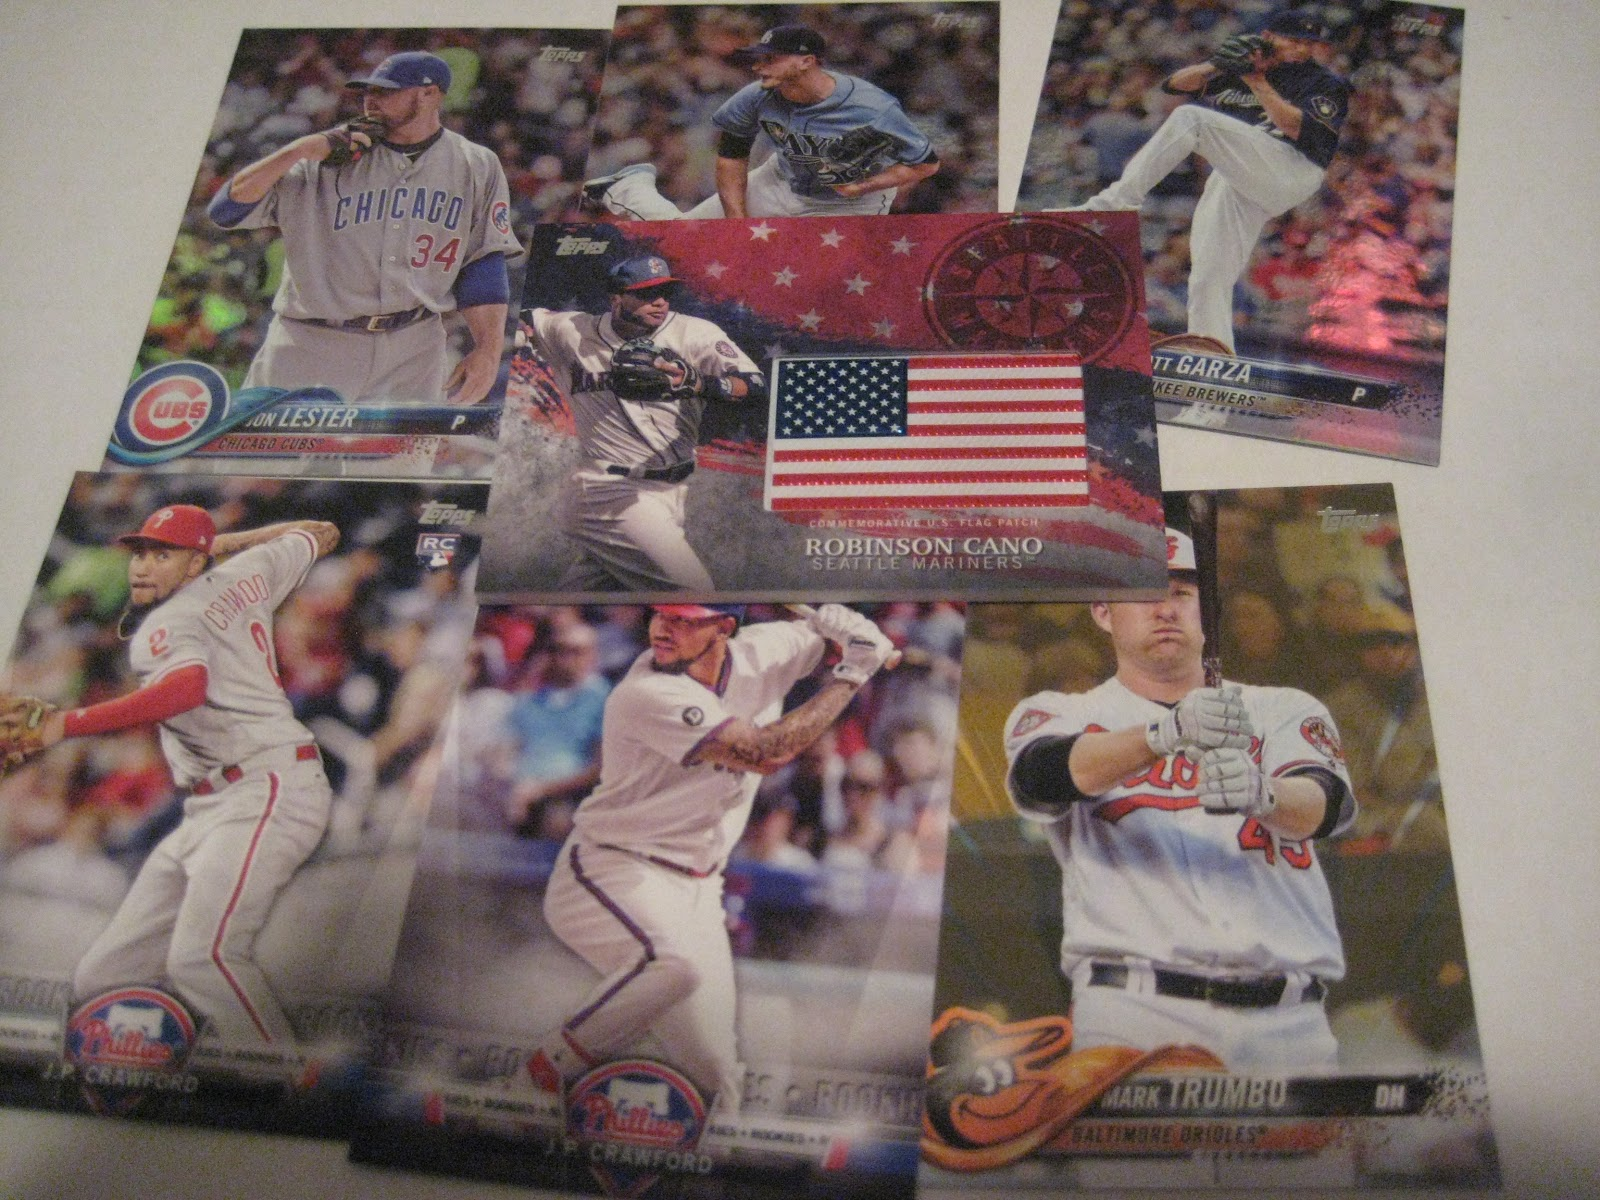 Baseball Cards Come to Life!: Can't beat the price